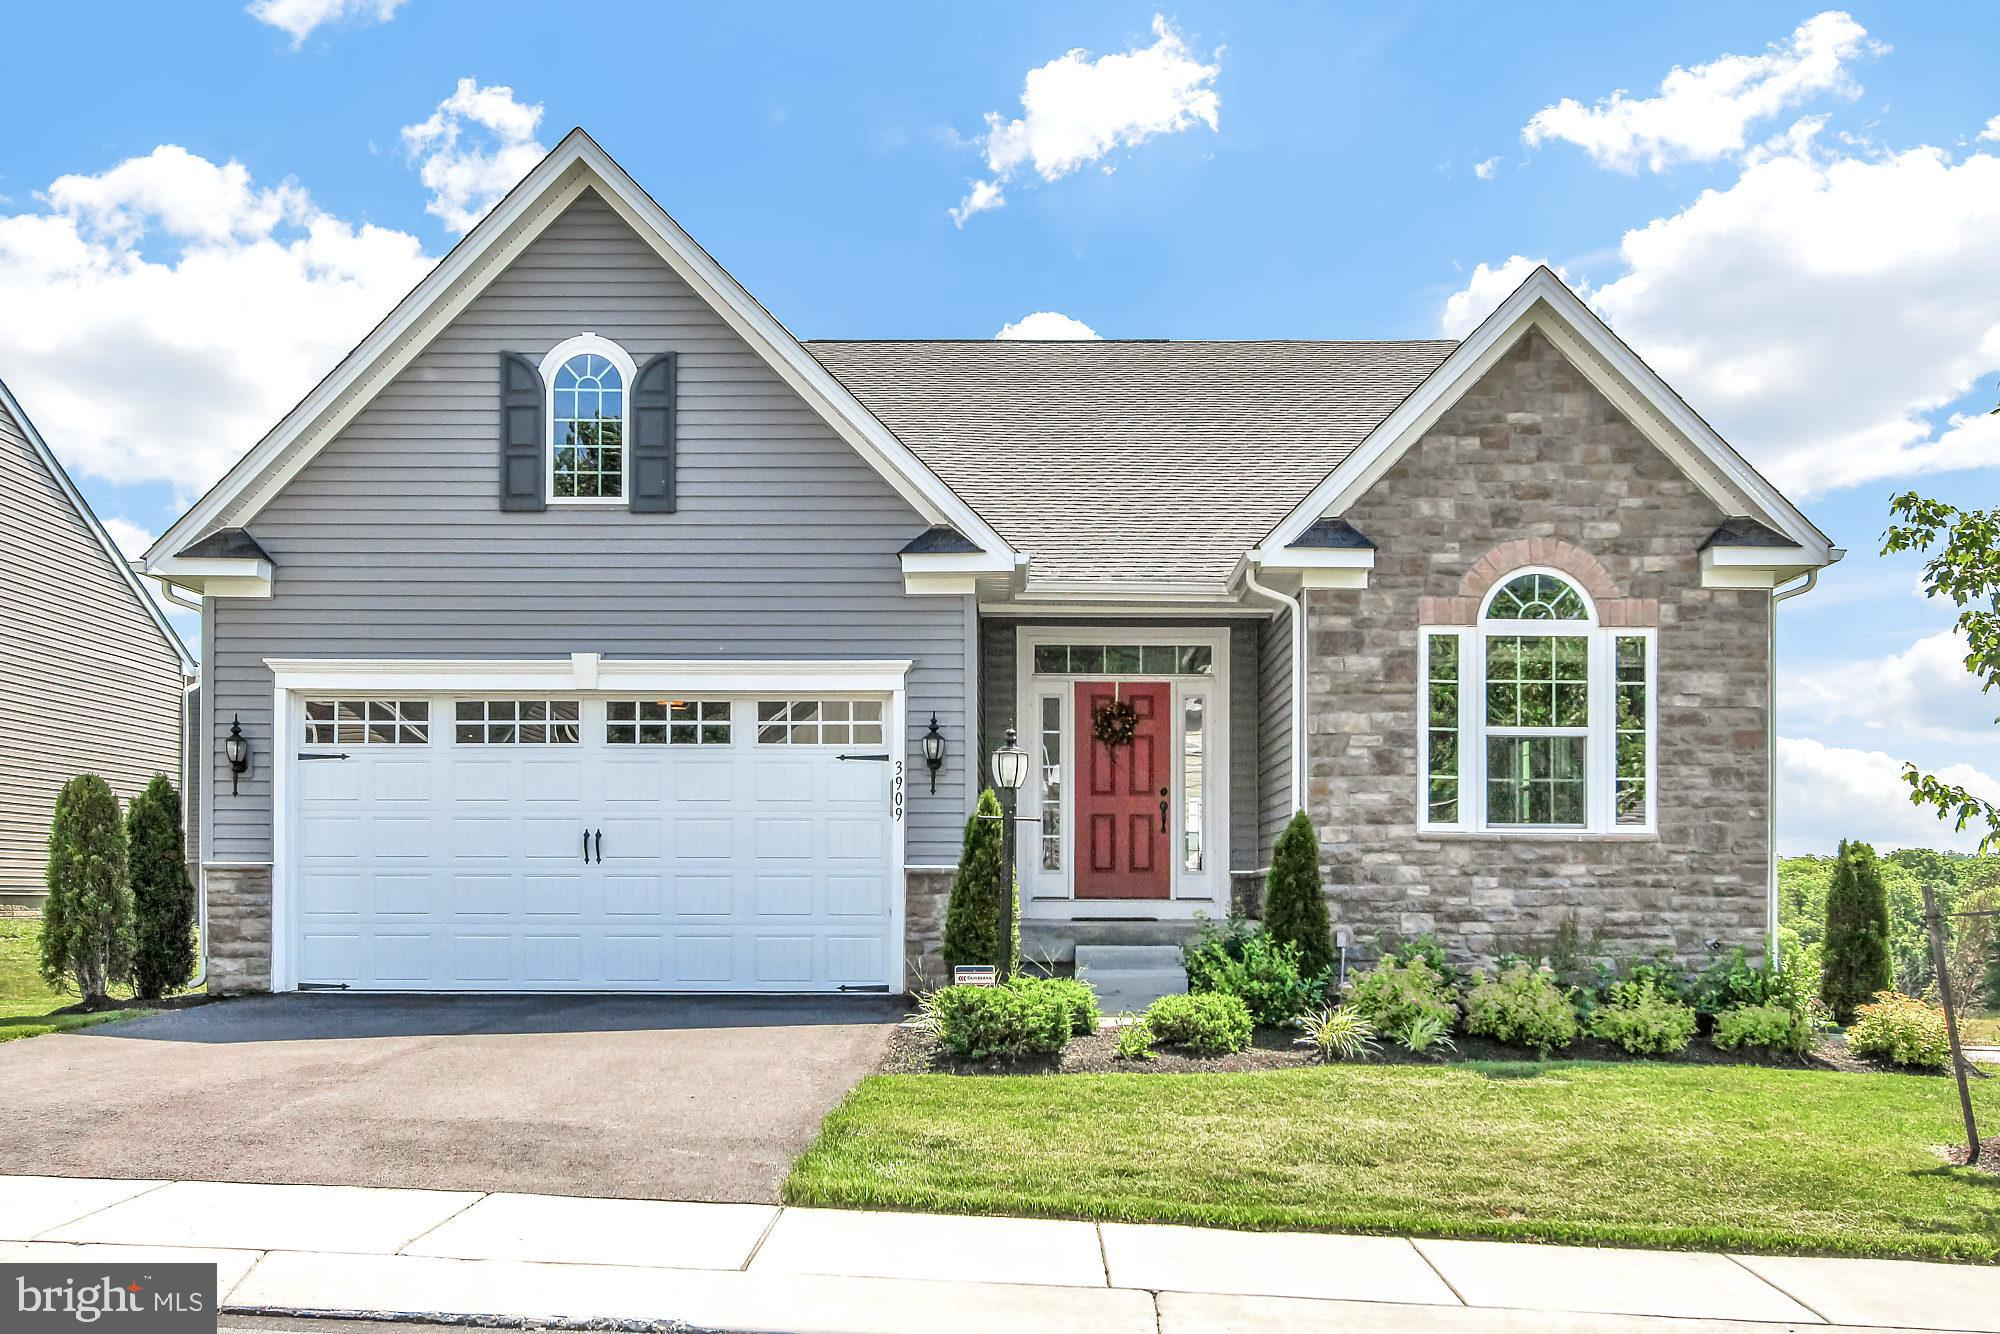 3909 COUNT FLEET COURT, HARRISBURG, PA 17110